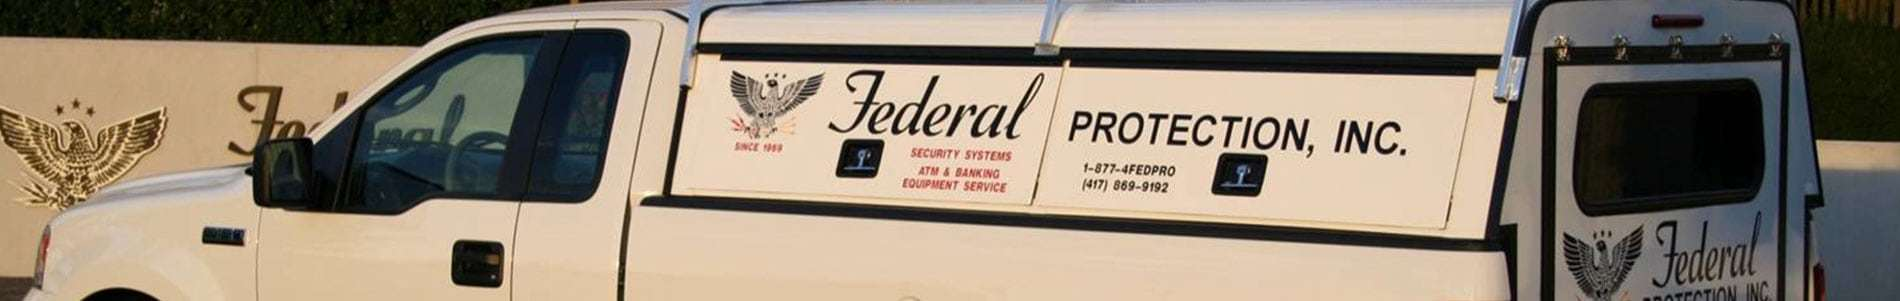 Federal Protection truck